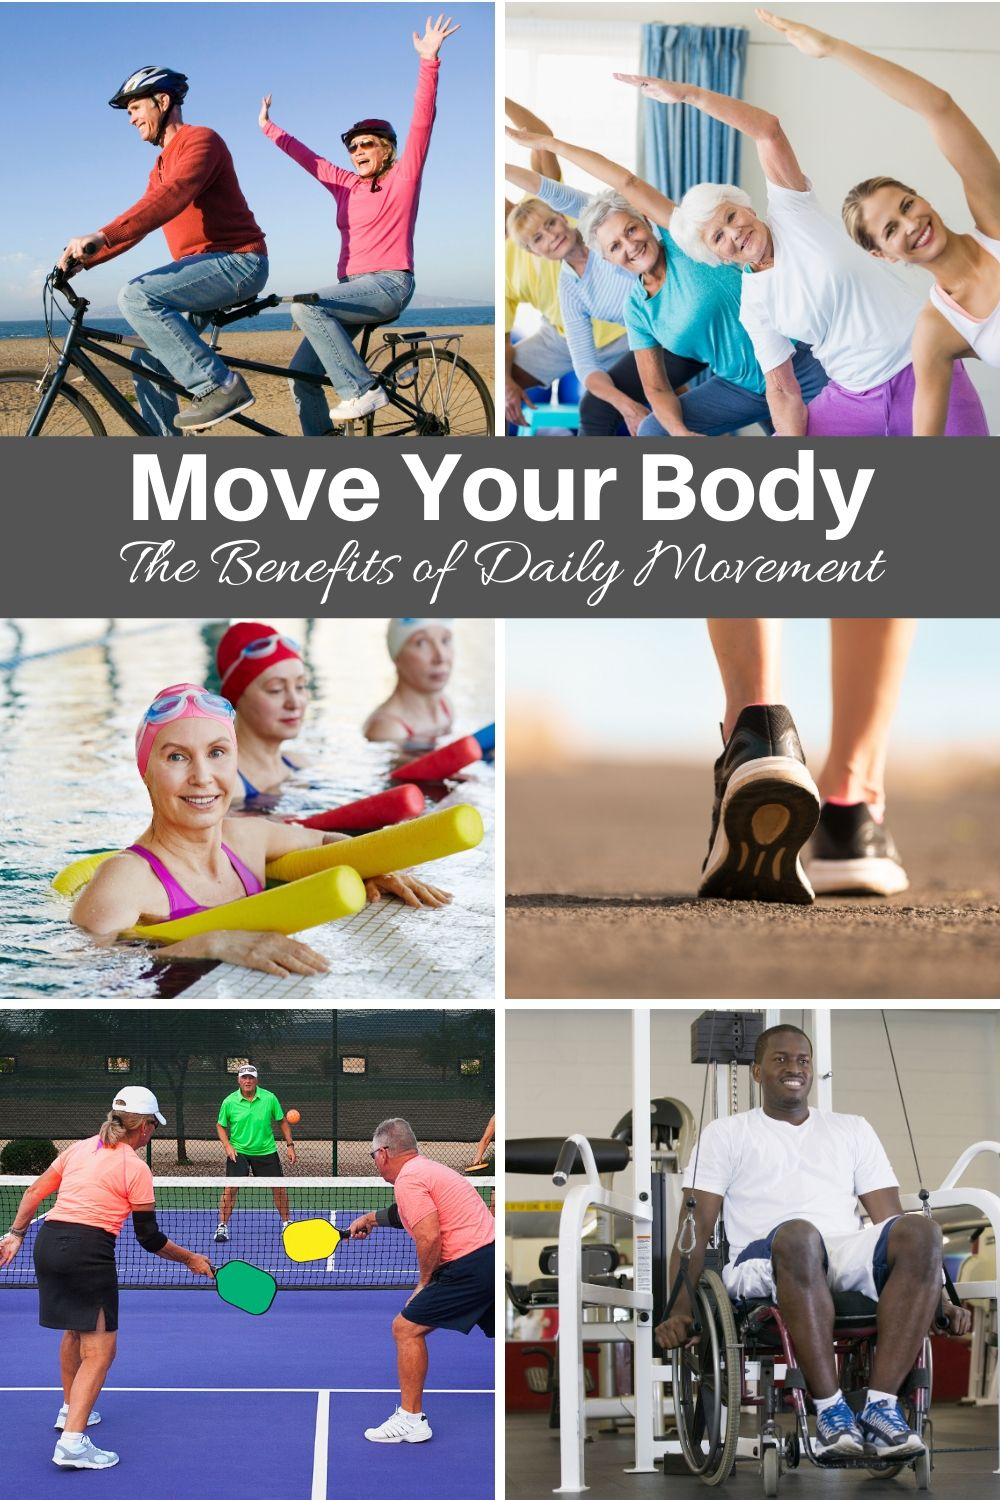 Move Your Body: The Benefits of Daily Movement